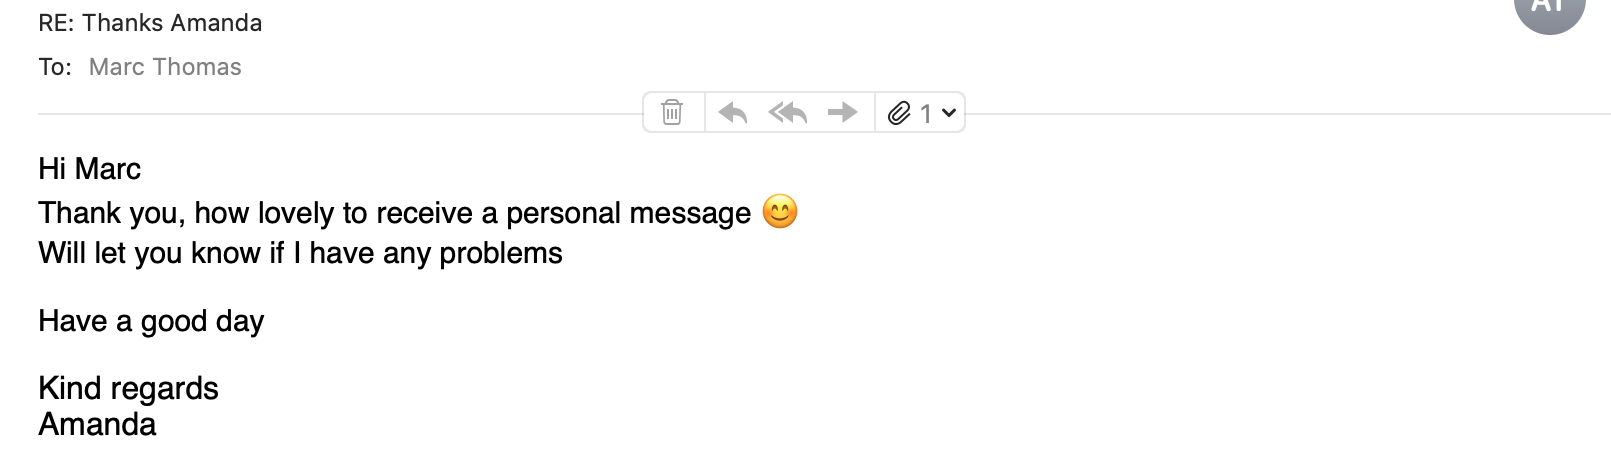 A screenshot of an email from a new user to Marc that mentions the personal loom video was nice to receive.